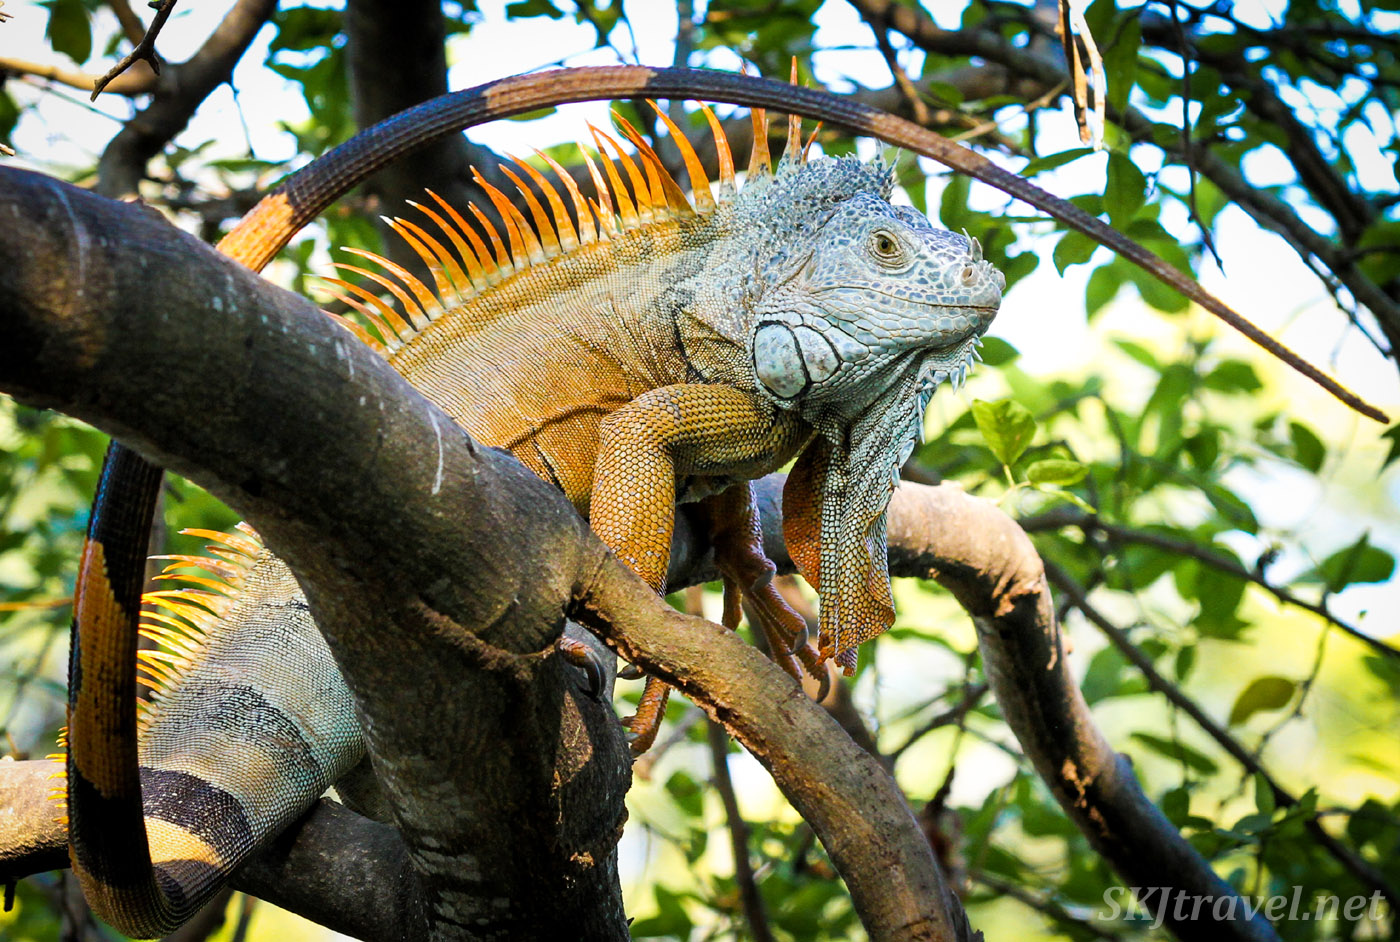 Large male iguana in a tree. Popoyote Lagoon, Ixtapa, Mexico. cocodrilario crocodile reserve